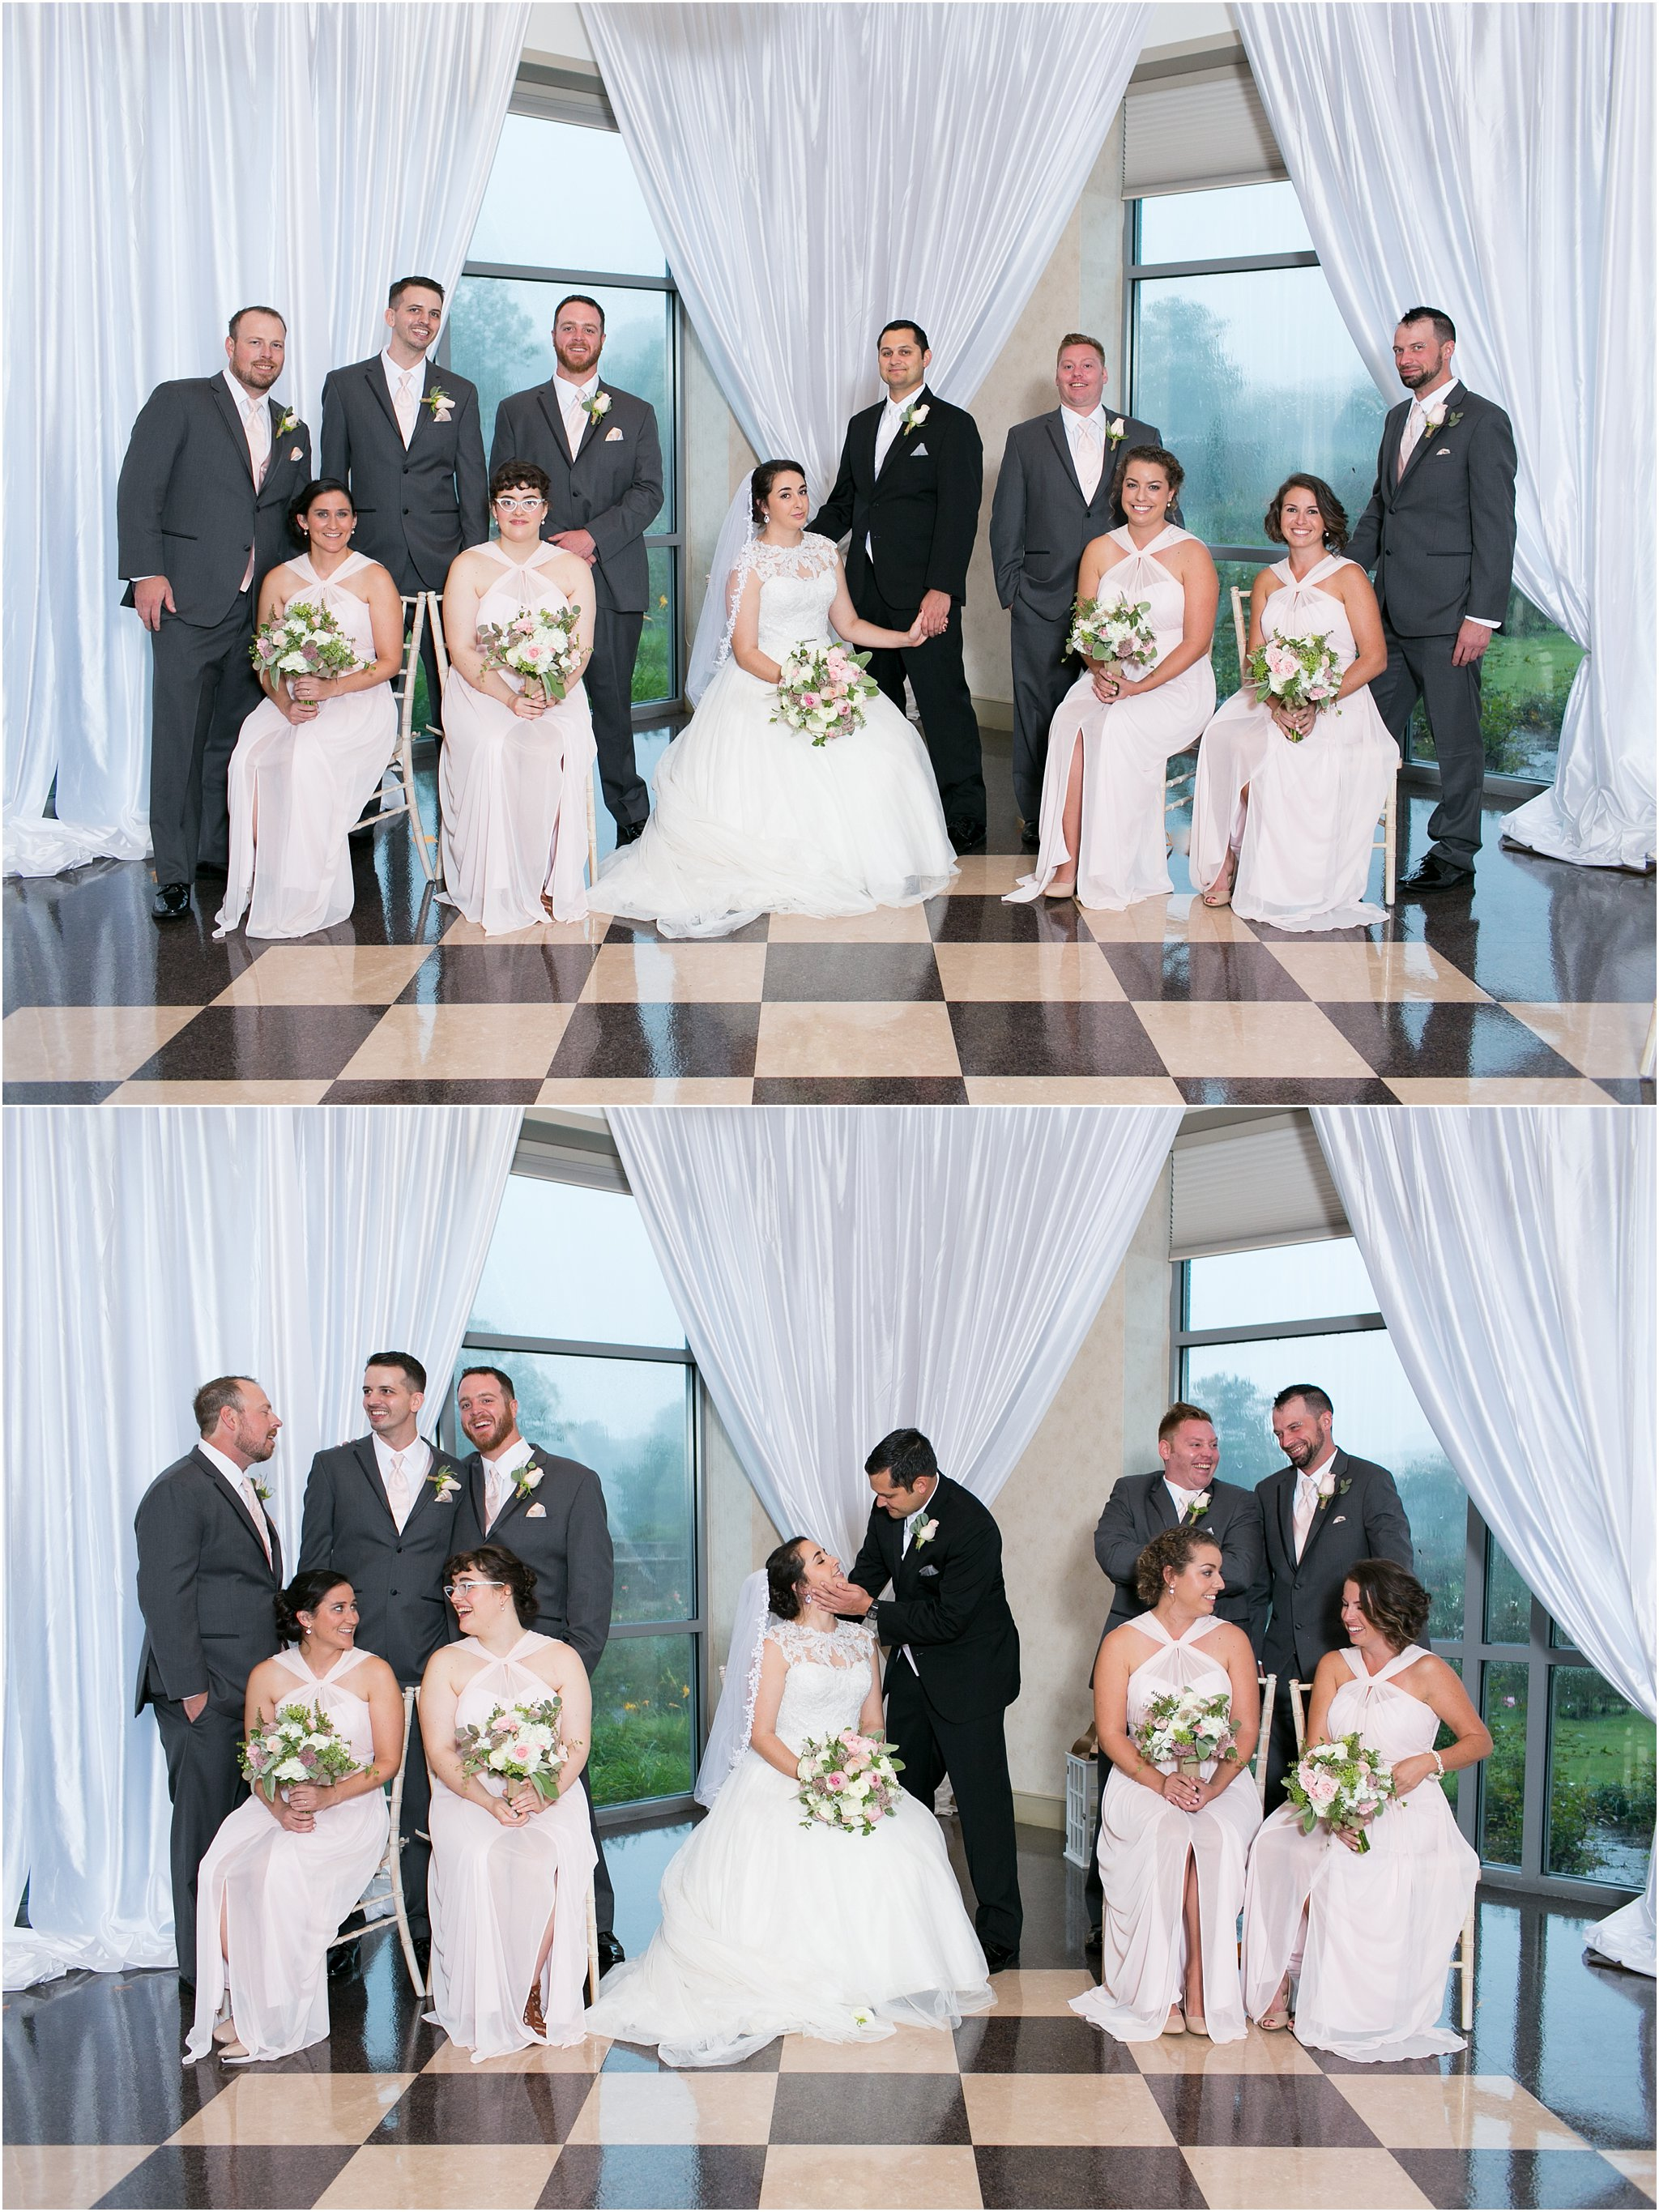 jessica_ryan_photography_virginia_wedding_photographer_wedding_hurricane_norfolk_botanical_gardens_hurricane_matthew_wedding_3578